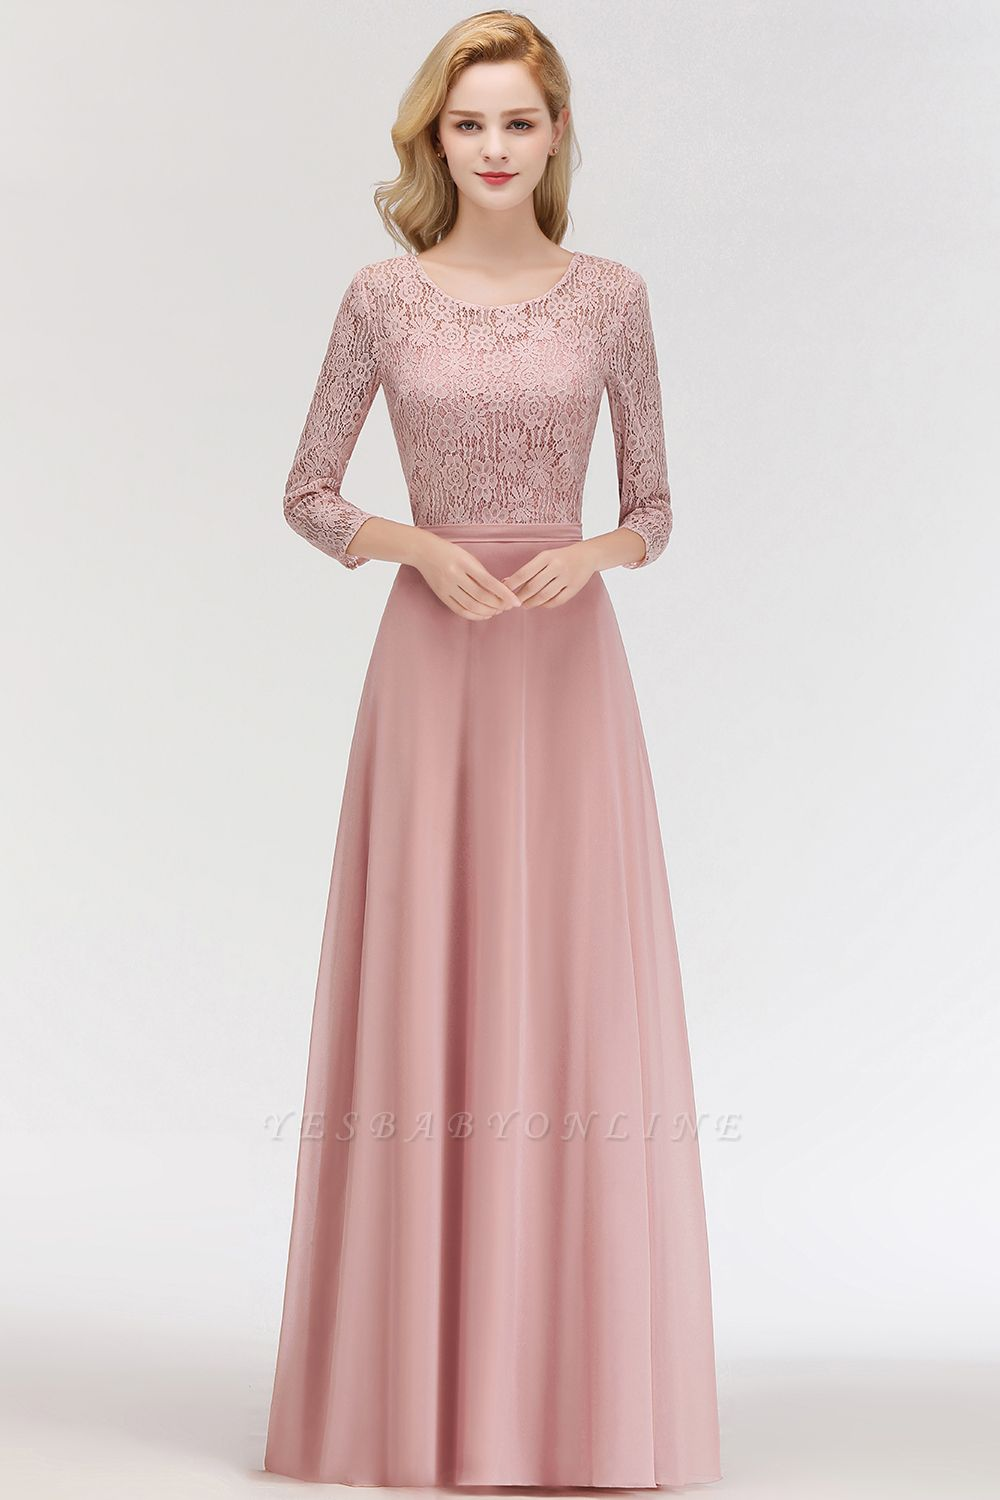 Simple Chiffon A-Line Bridesmaid Dresses | Scoop 3/4 Sleeves Lace Formal Prom Dresses